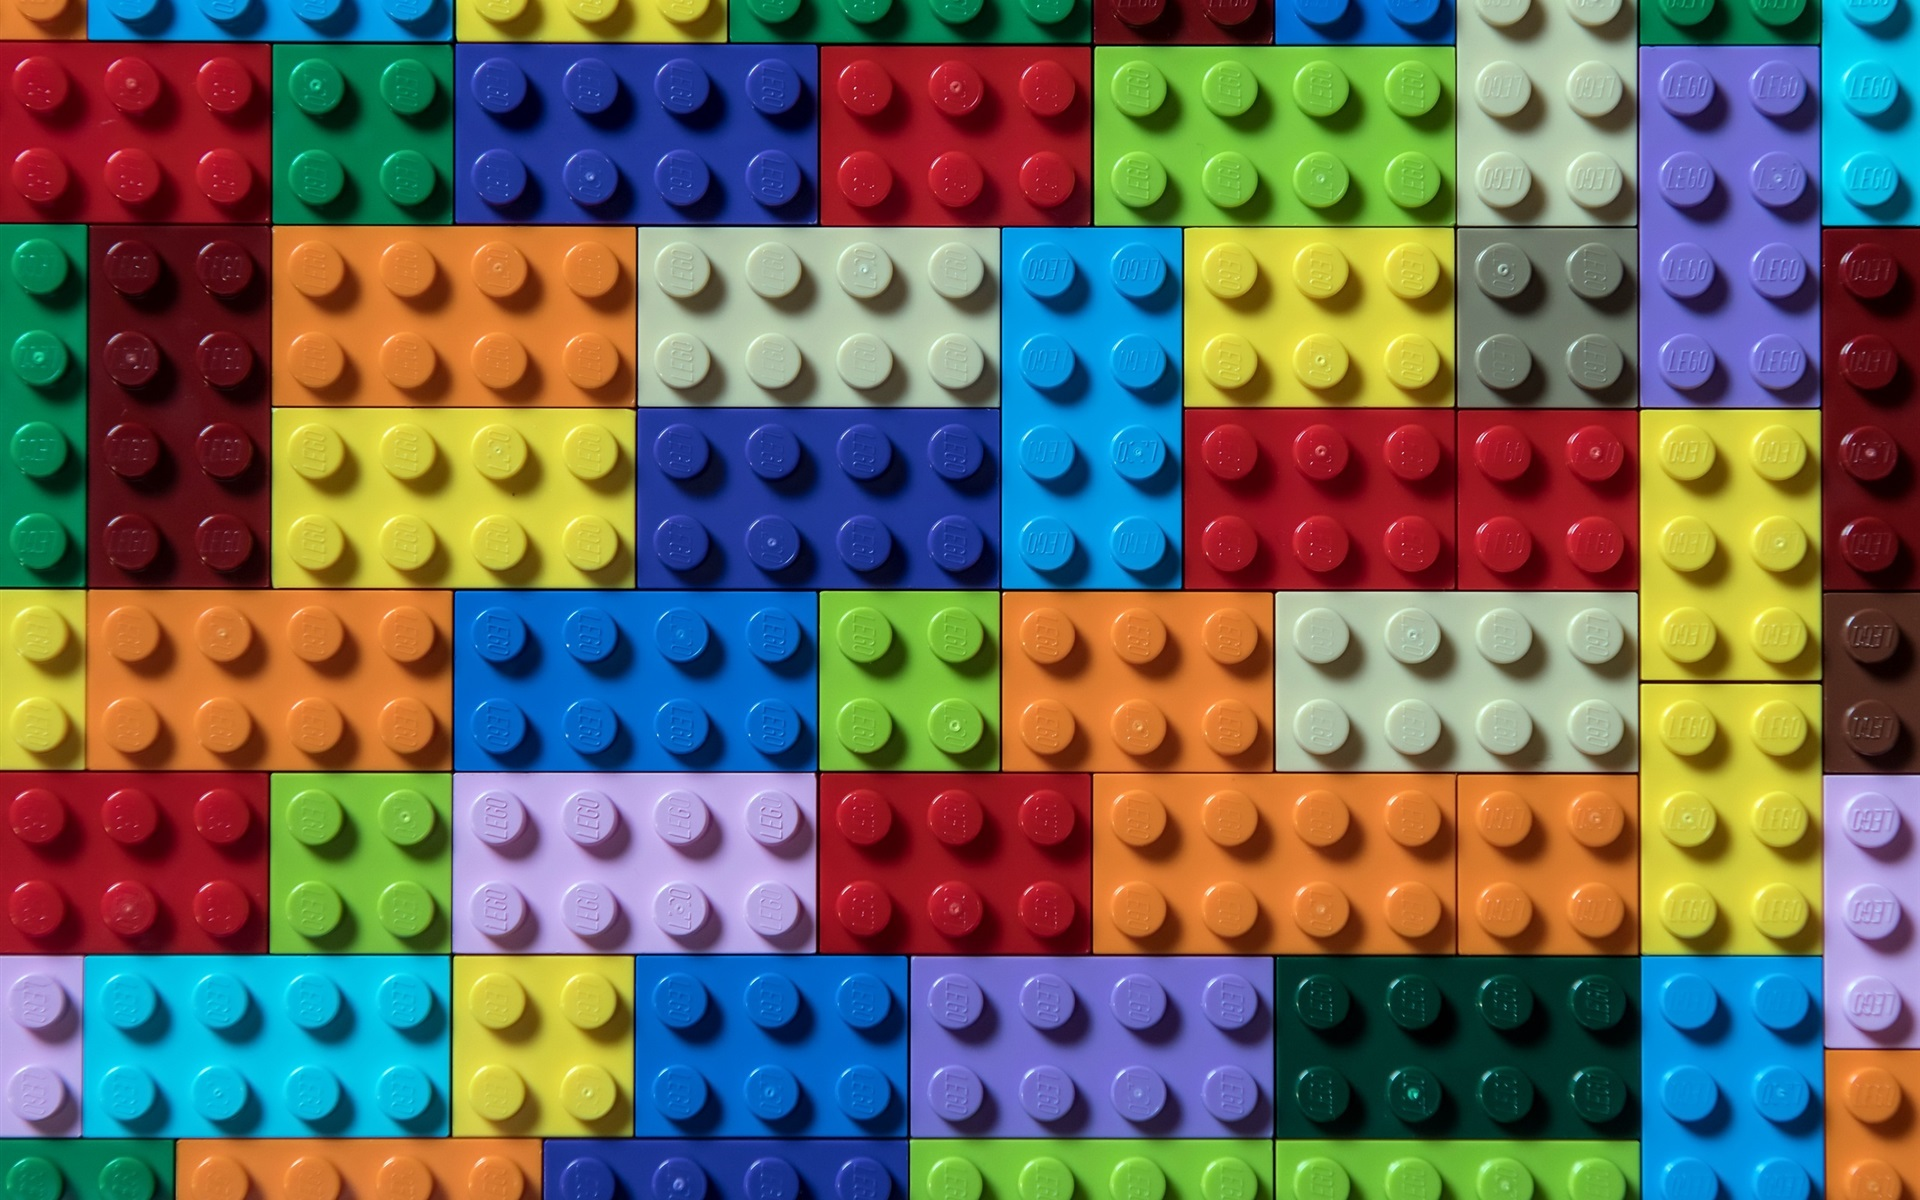 Colorful Lego Cubes 750x1334 Iphone 8 7 6 6s Wallpaper